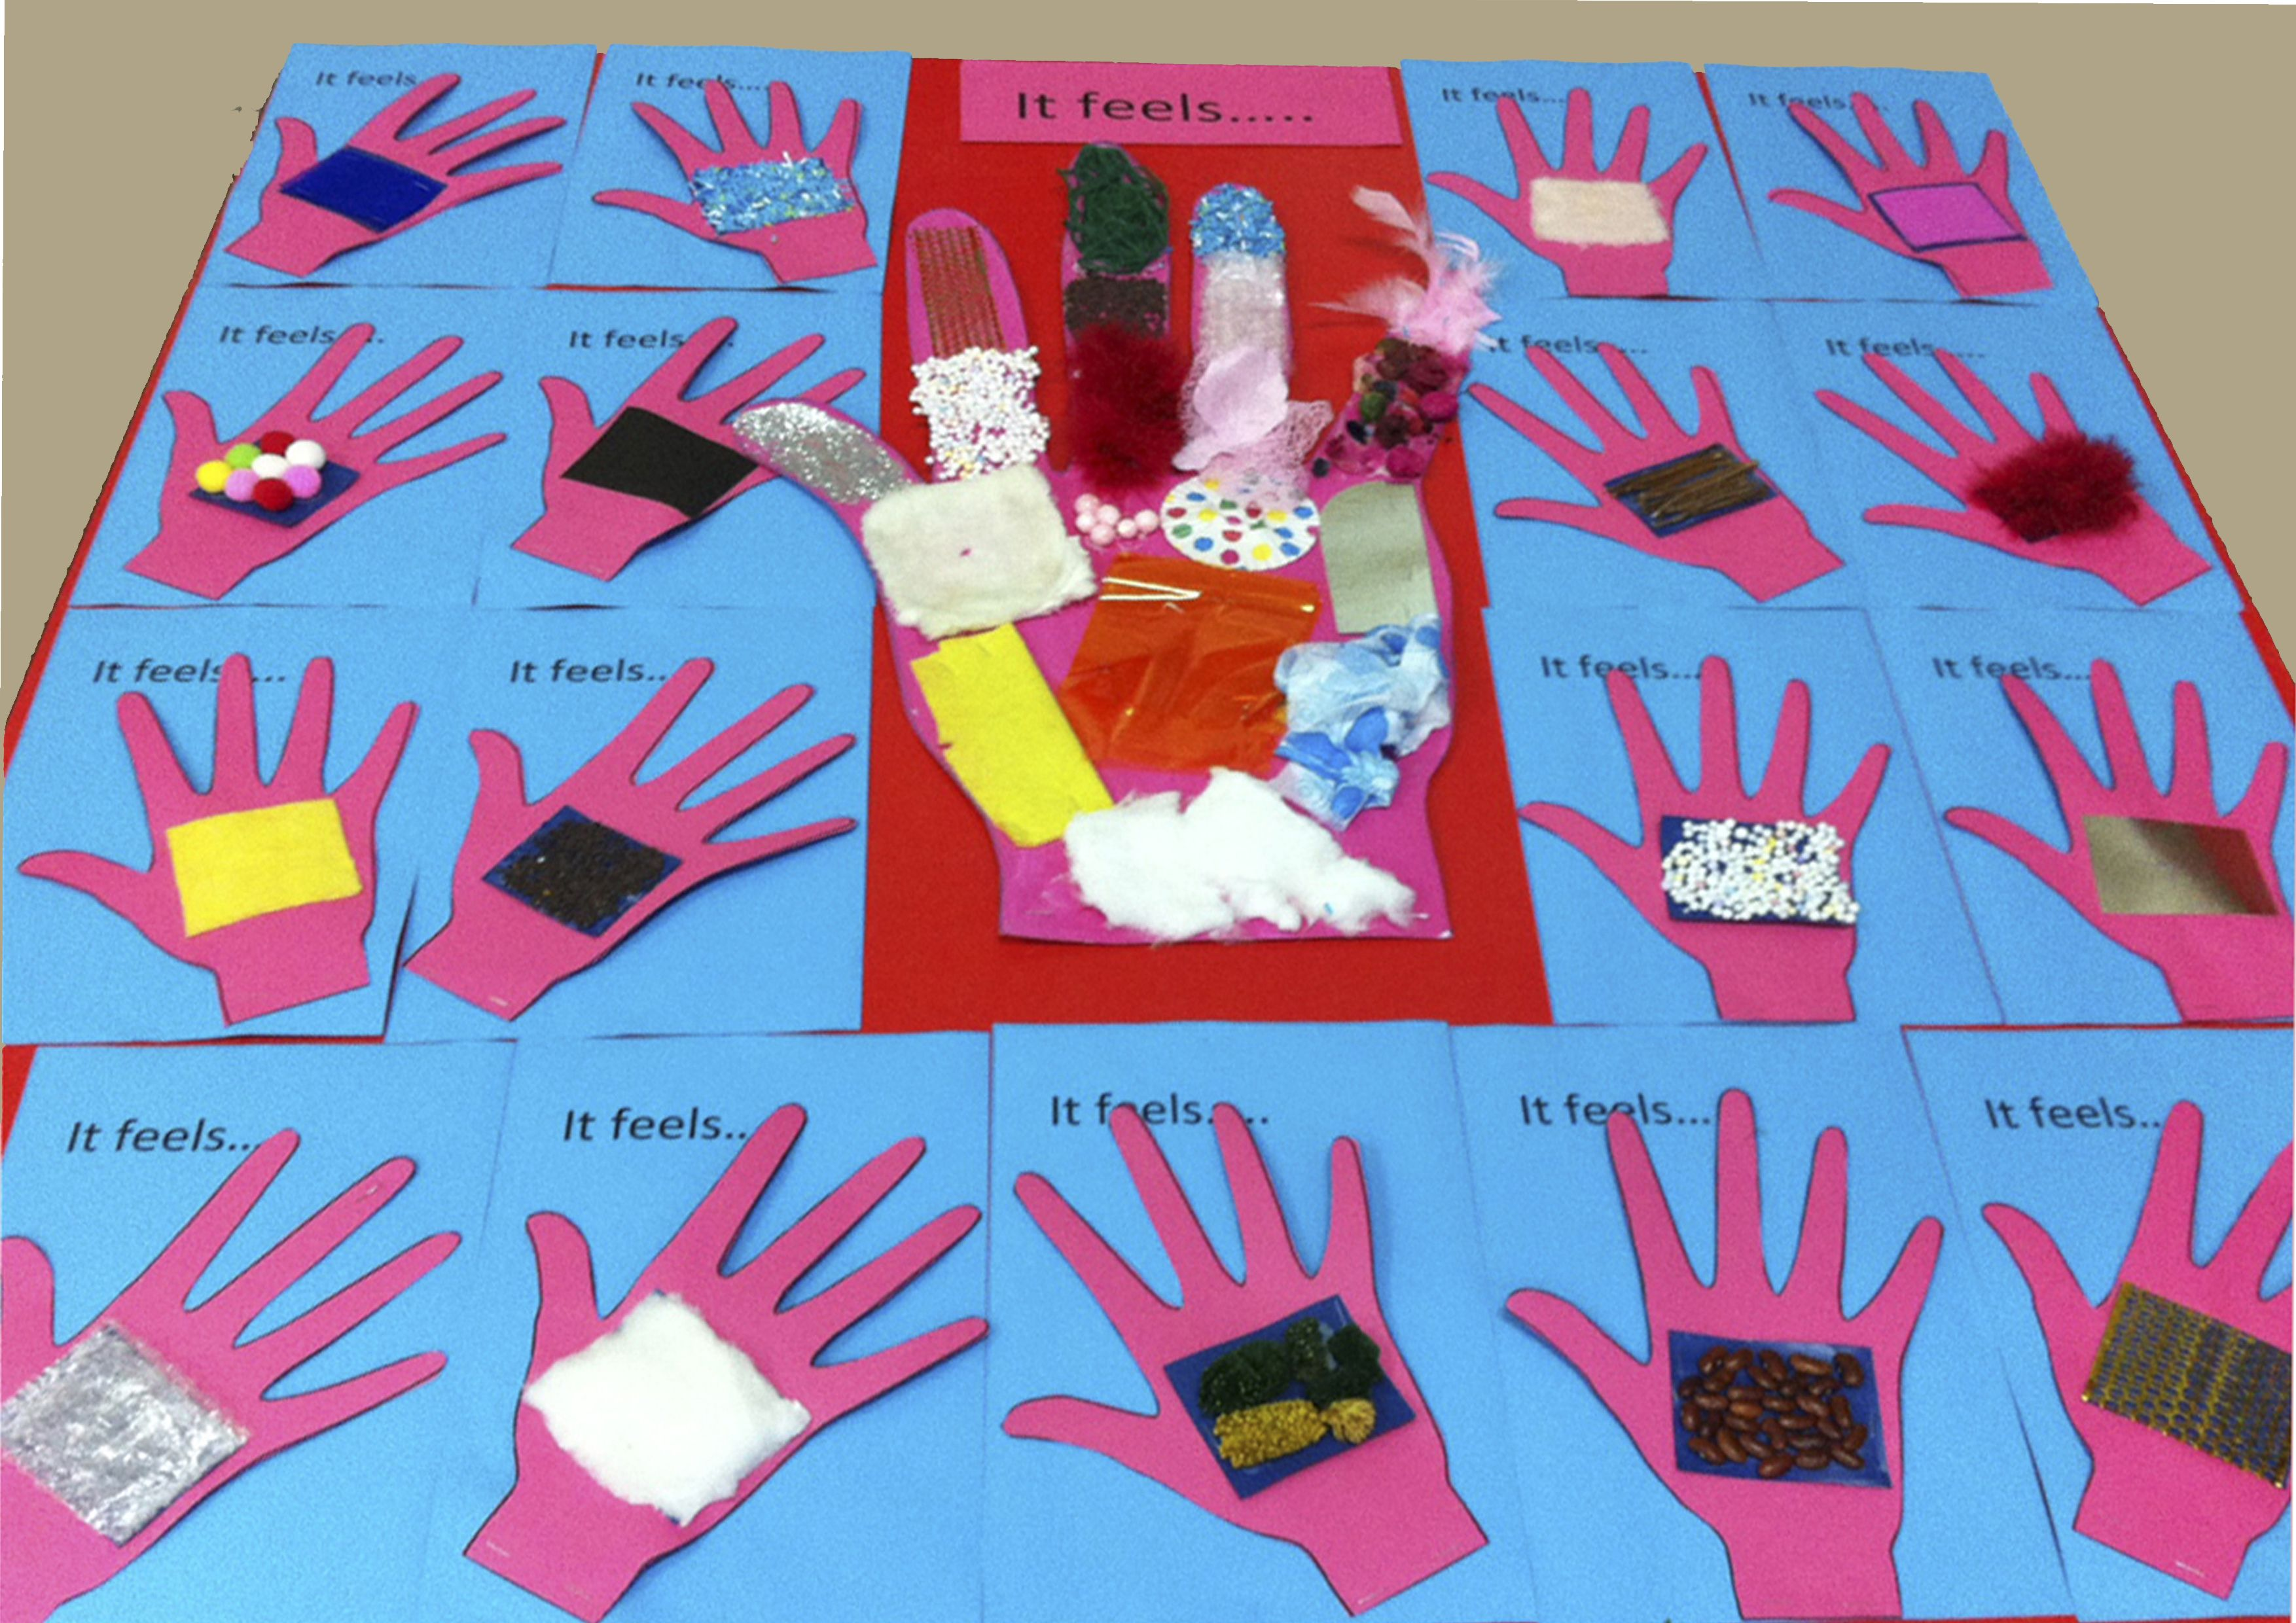 During Our 5 Senses Unit For The Sense Of Touch We Did